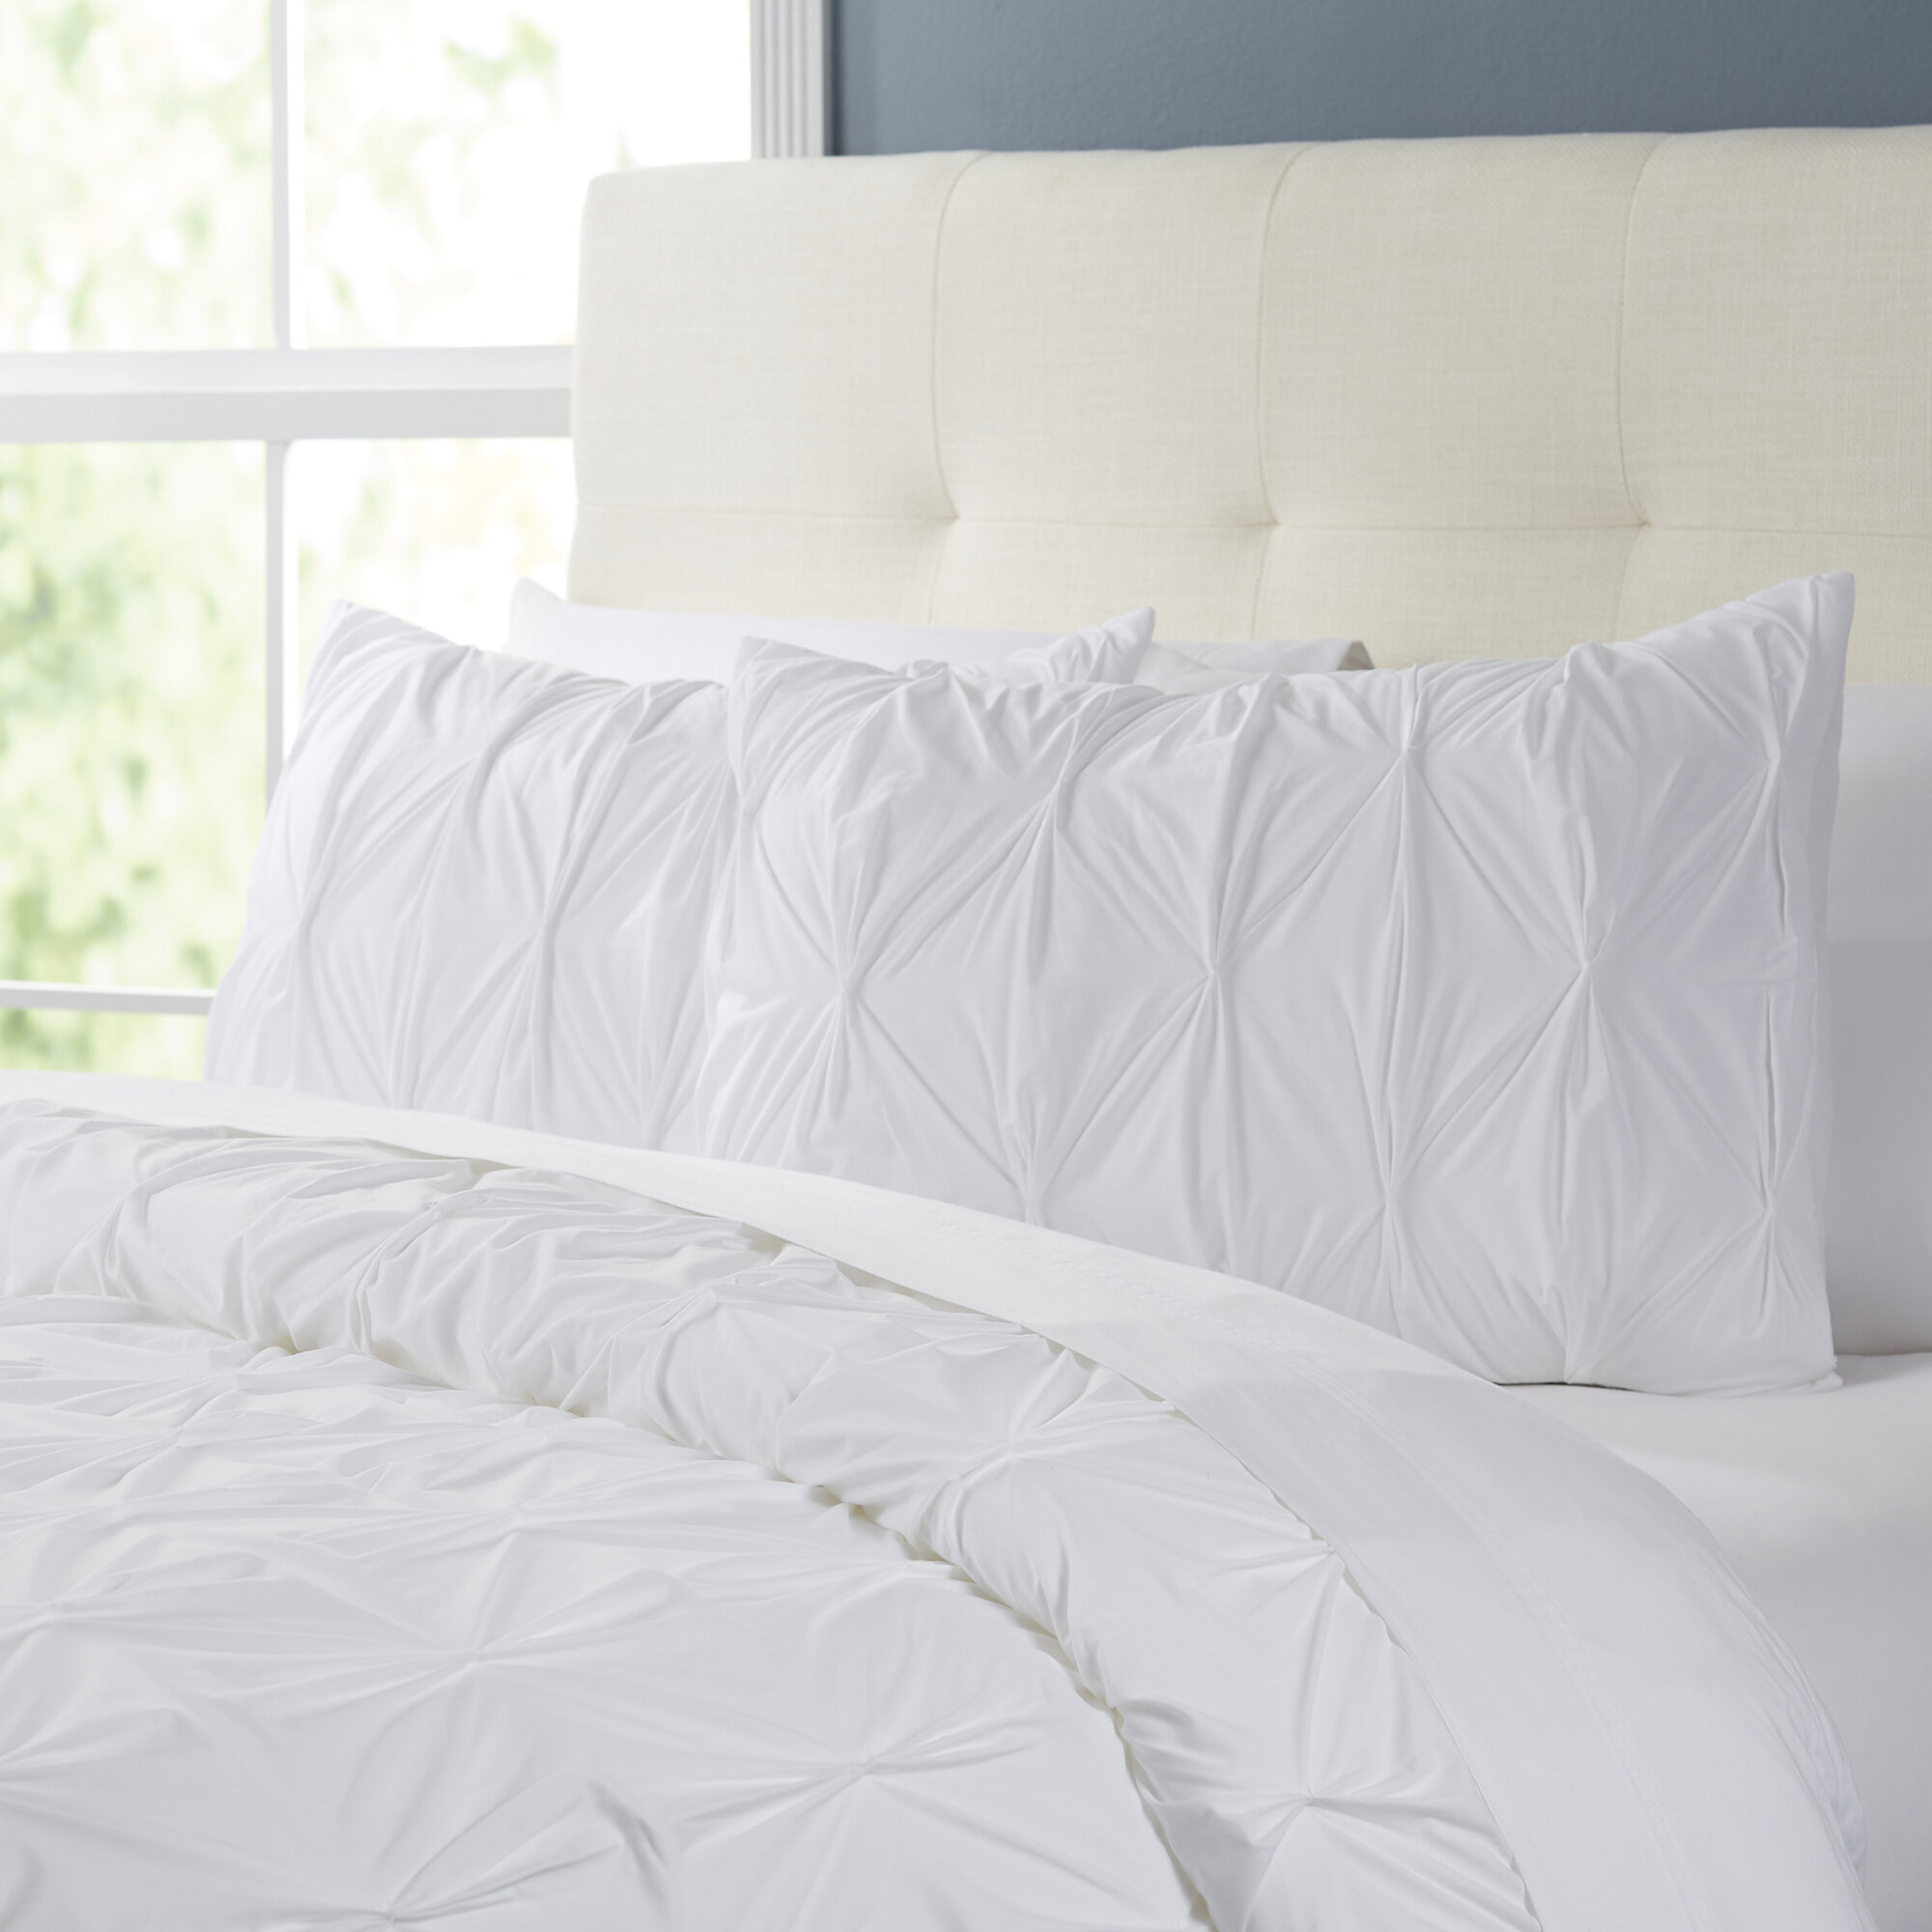 comforter from r sophistication p pin the class linens and navy set bedroom your waterford touchofclass to oversized vaughn stately bedding features linen com adds